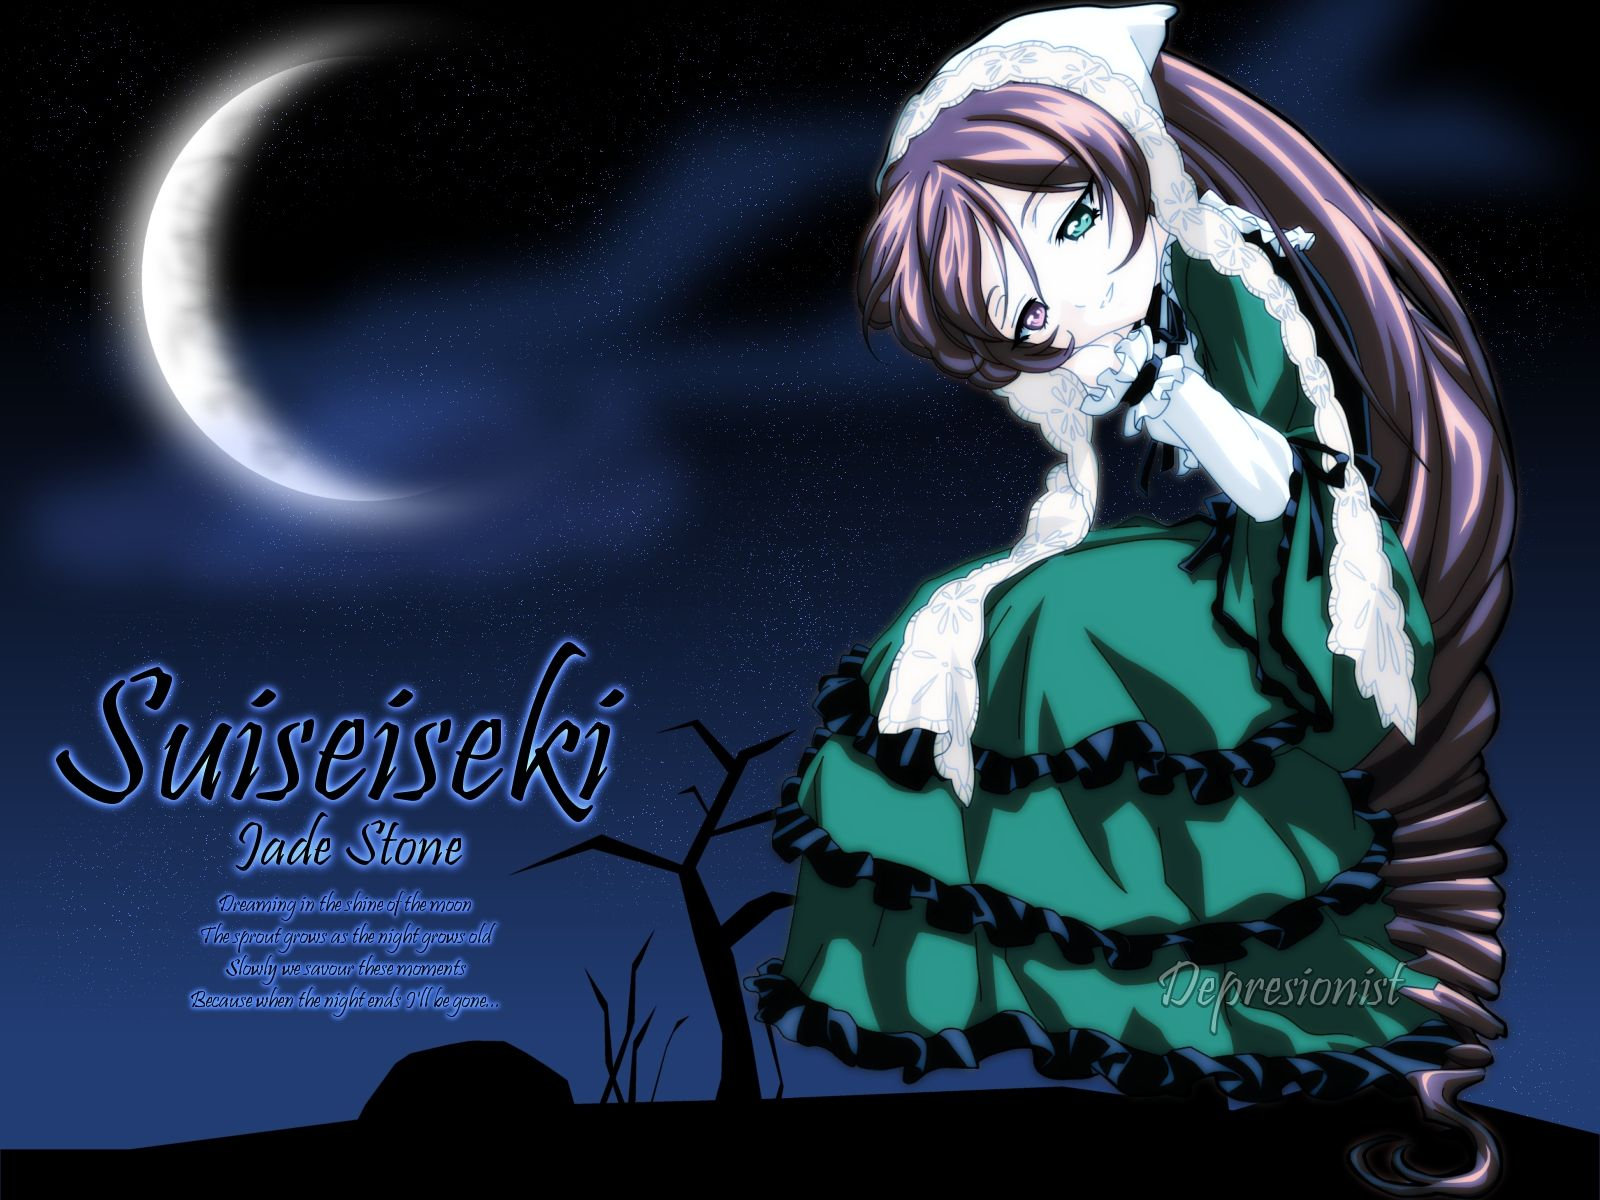 Konachan.com - 25151 bicolored_eyes moon rozen_maiden suiseiseki